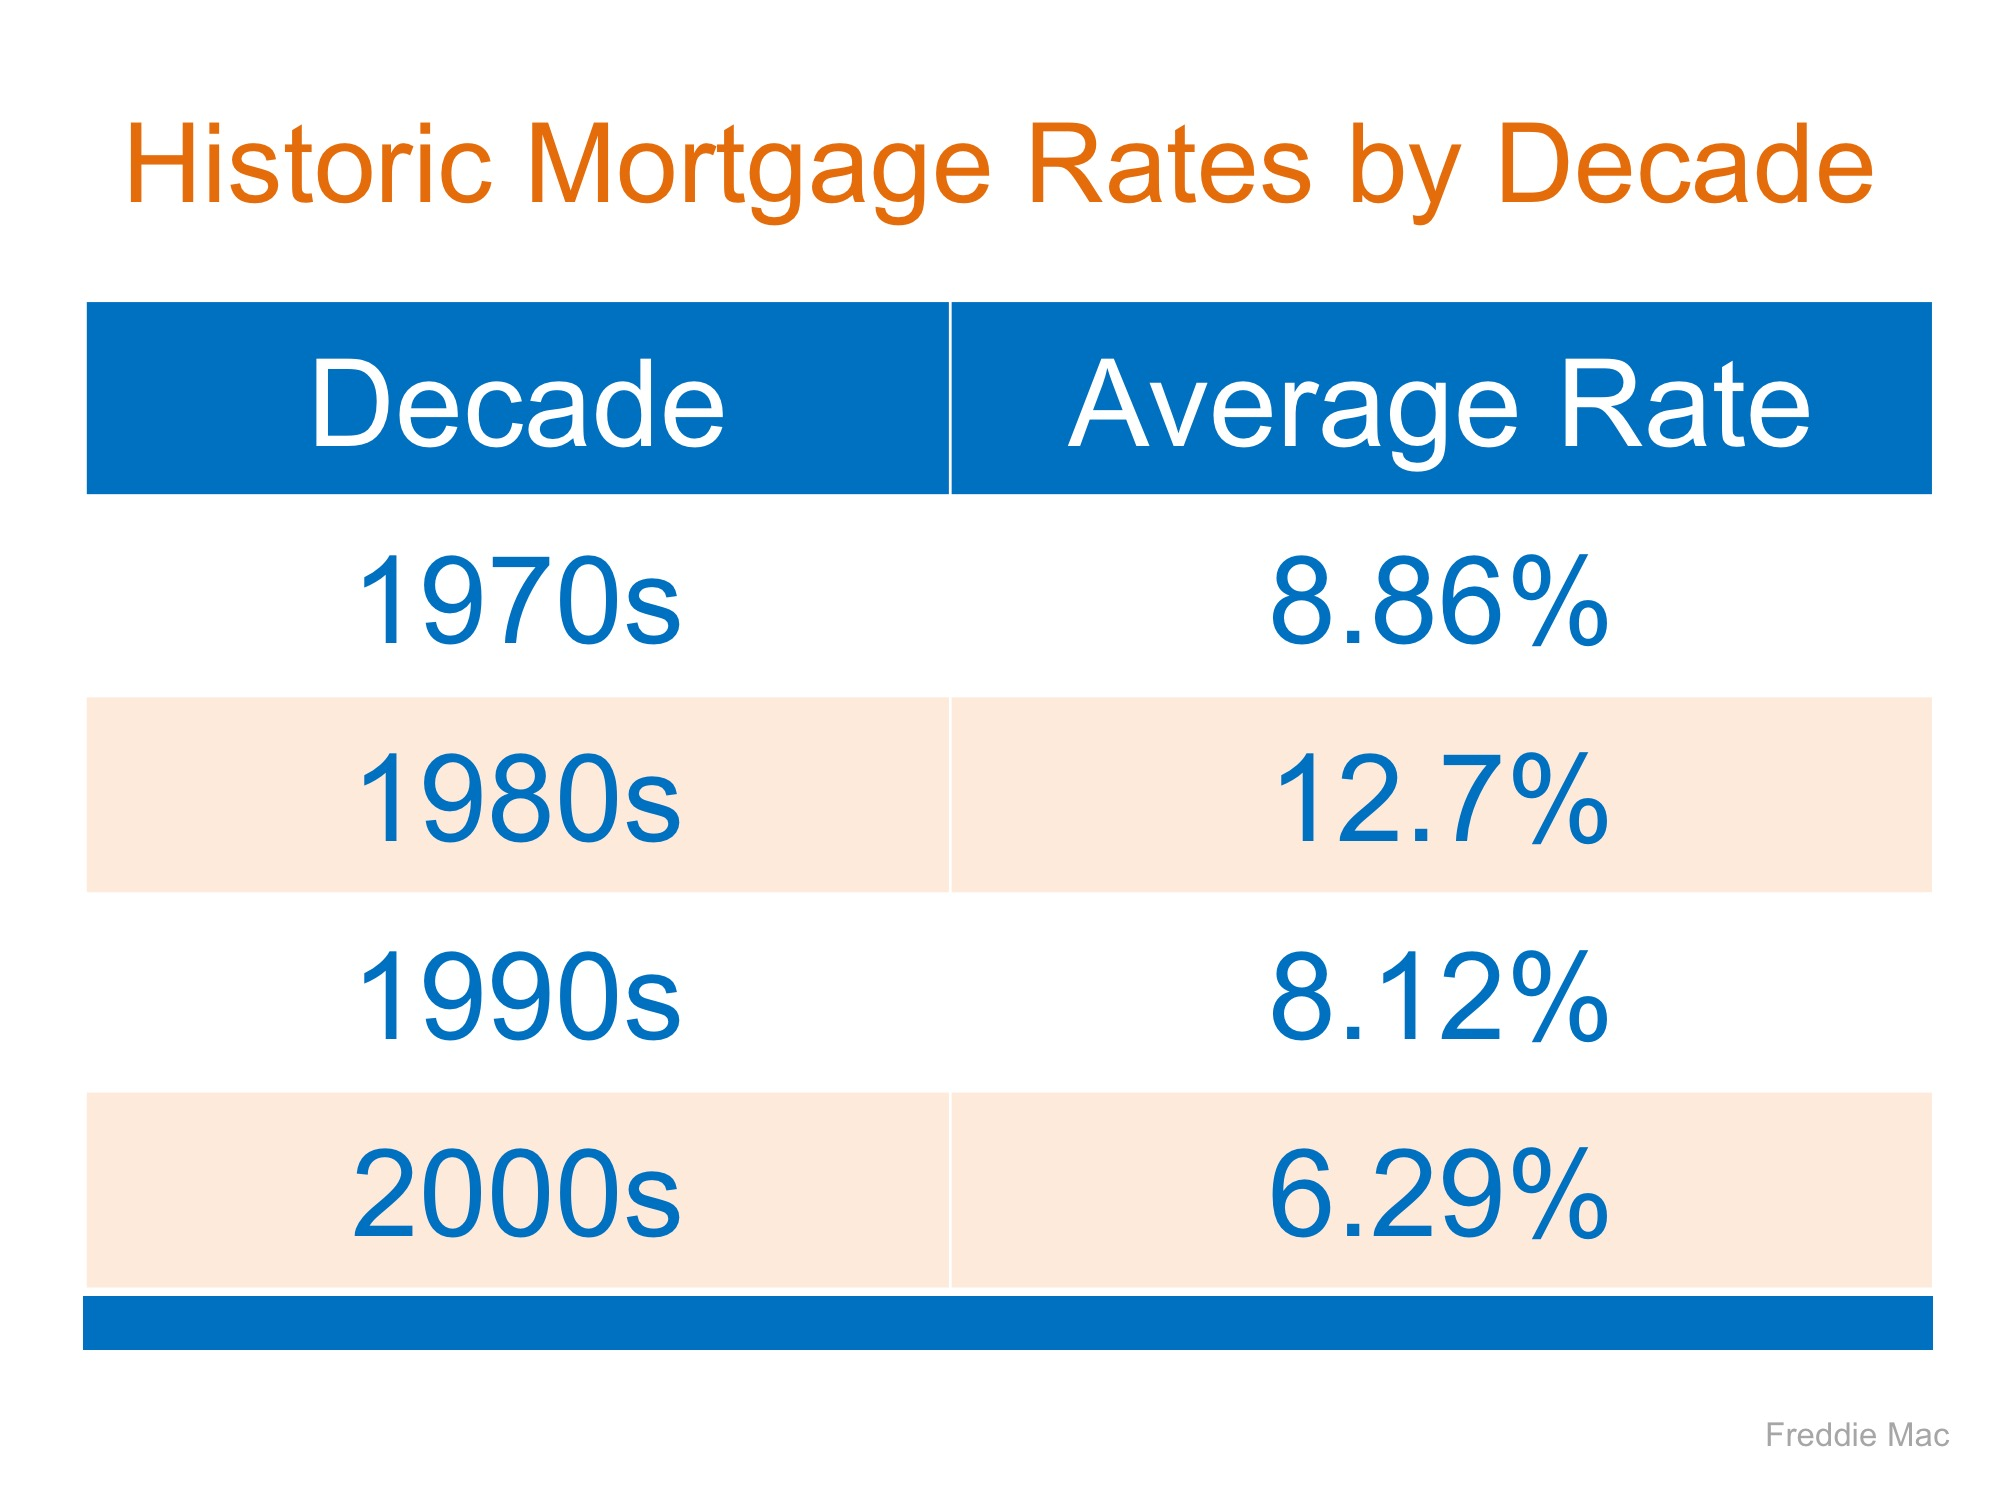 Mortgage Interest Rates Are Going Up... Should I Wait to Buy? | MyKCM